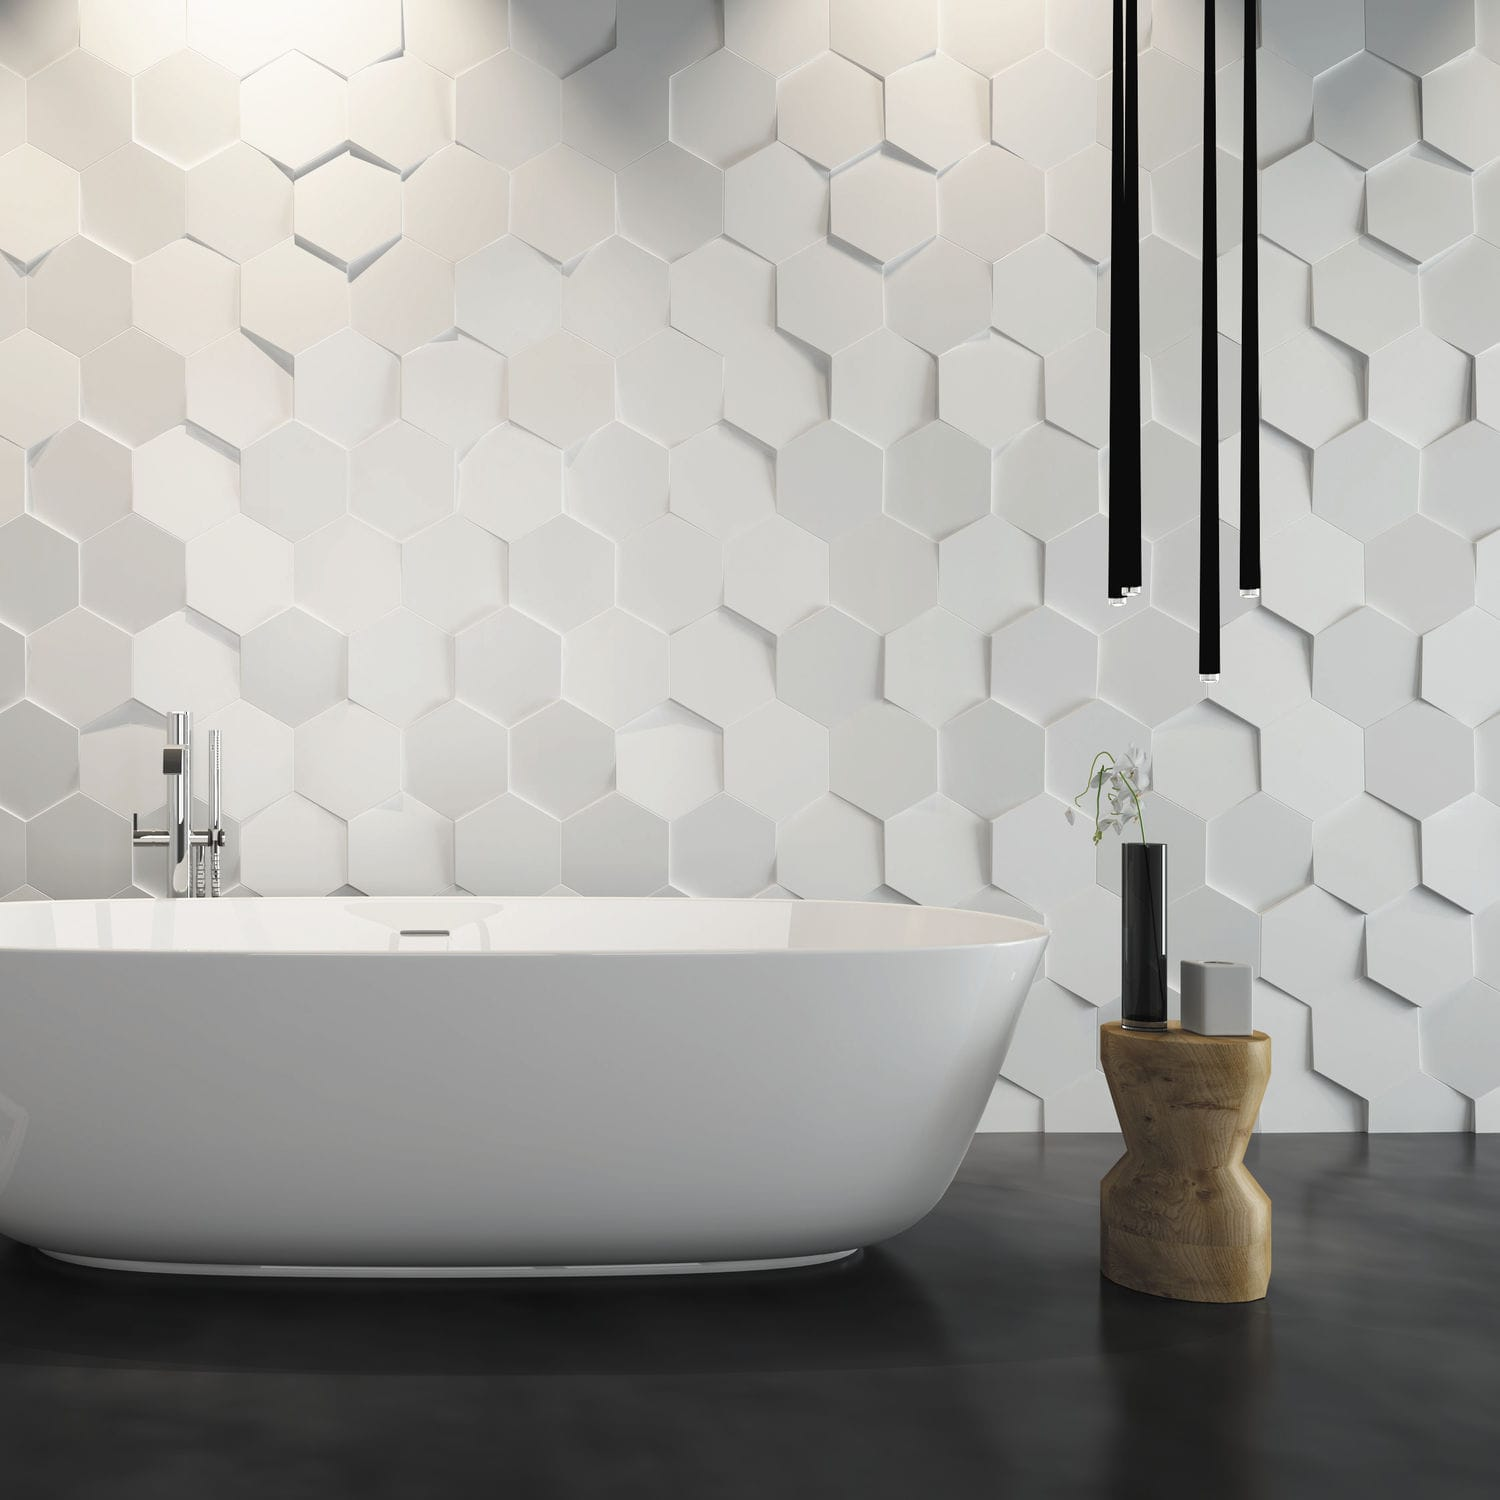 Bathroom tile / wall / ceramic / embossed - HEXA - WOW Design EU